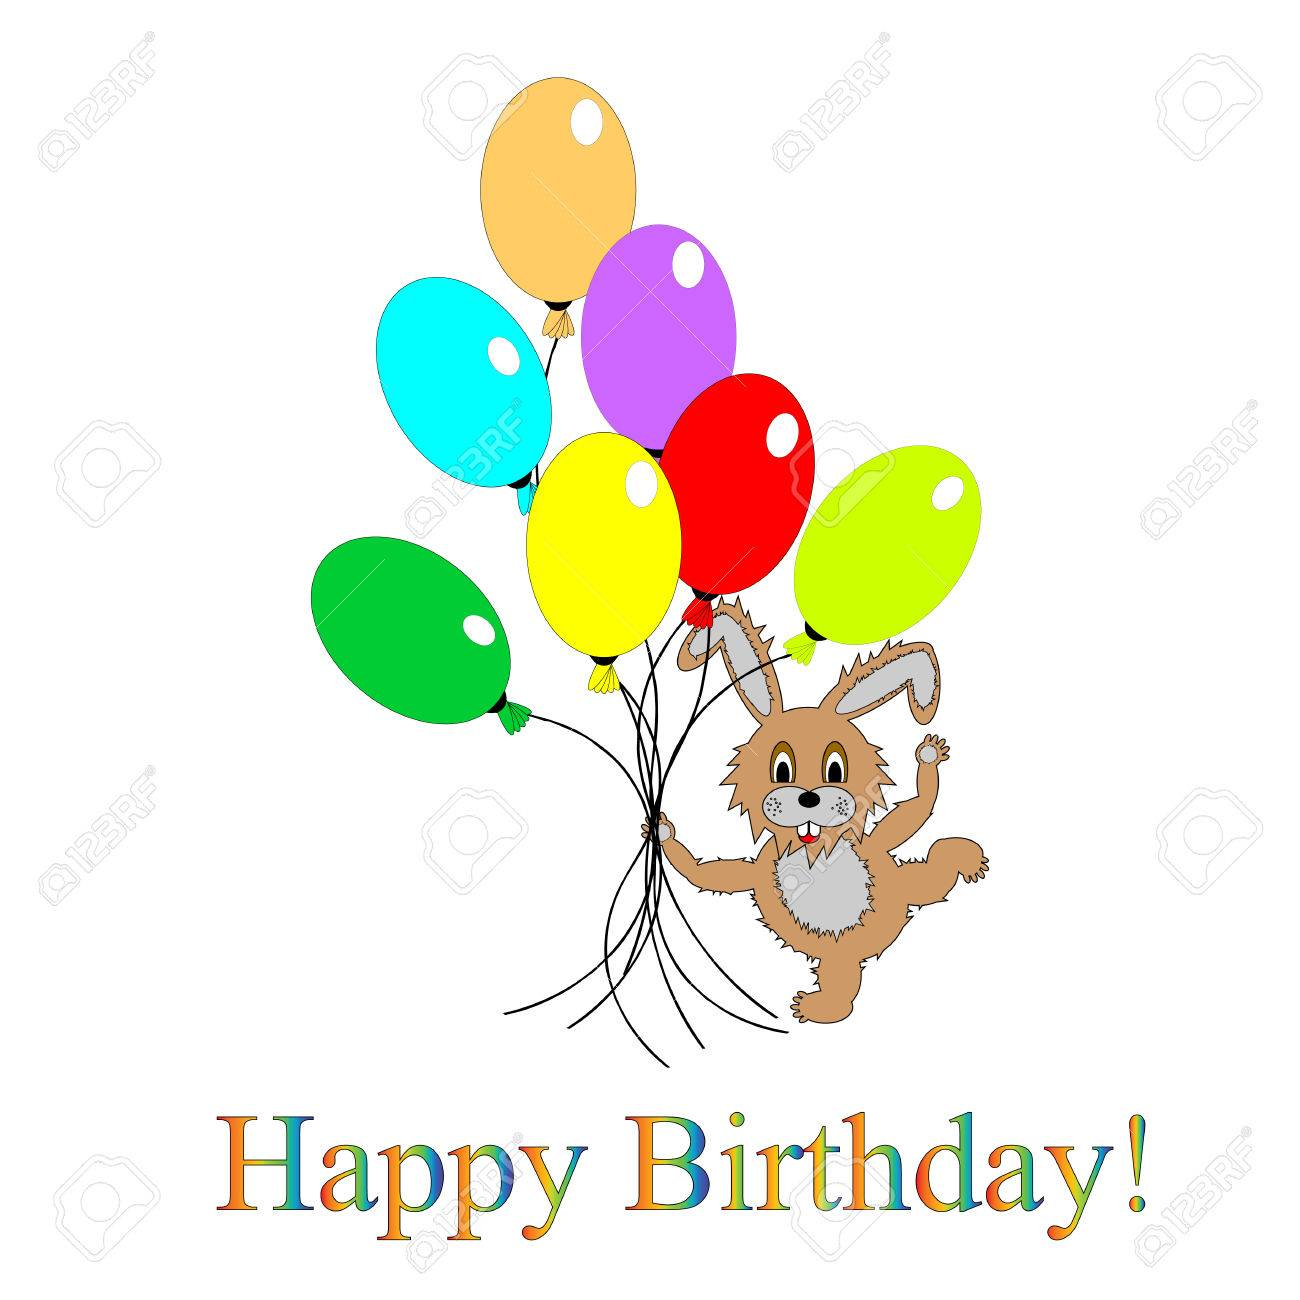 A Funny Rabbit With Many Colorful Balloons Design Birthday Card Stock Vector